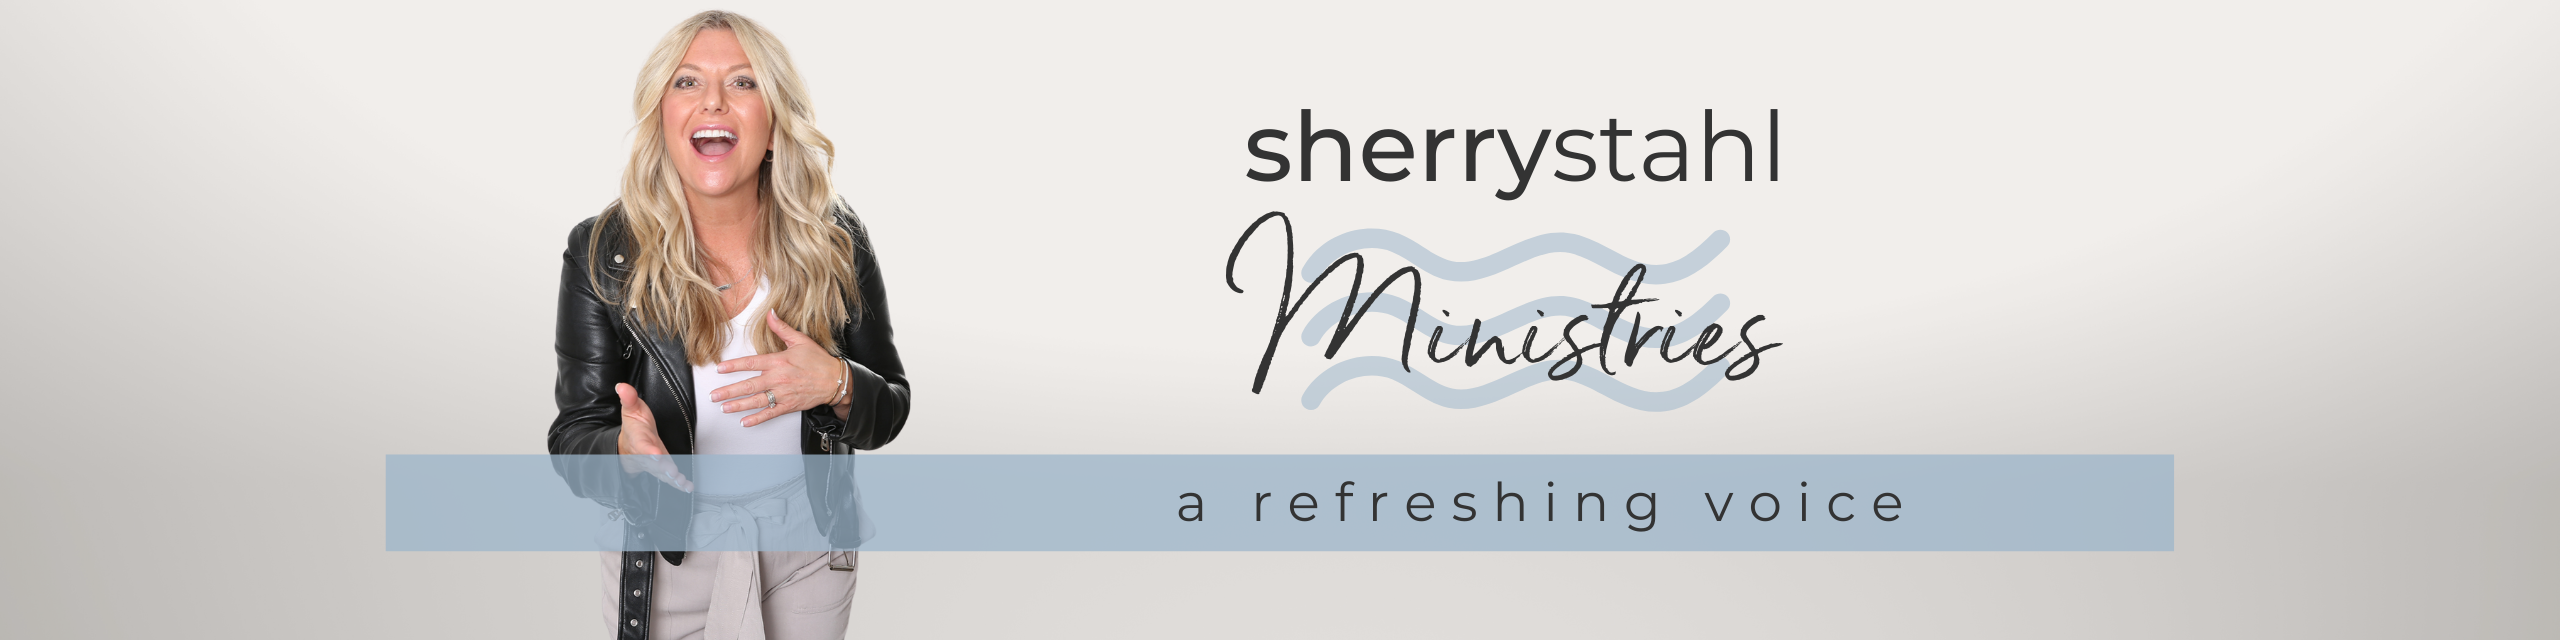 sherry stahl Ministries Header